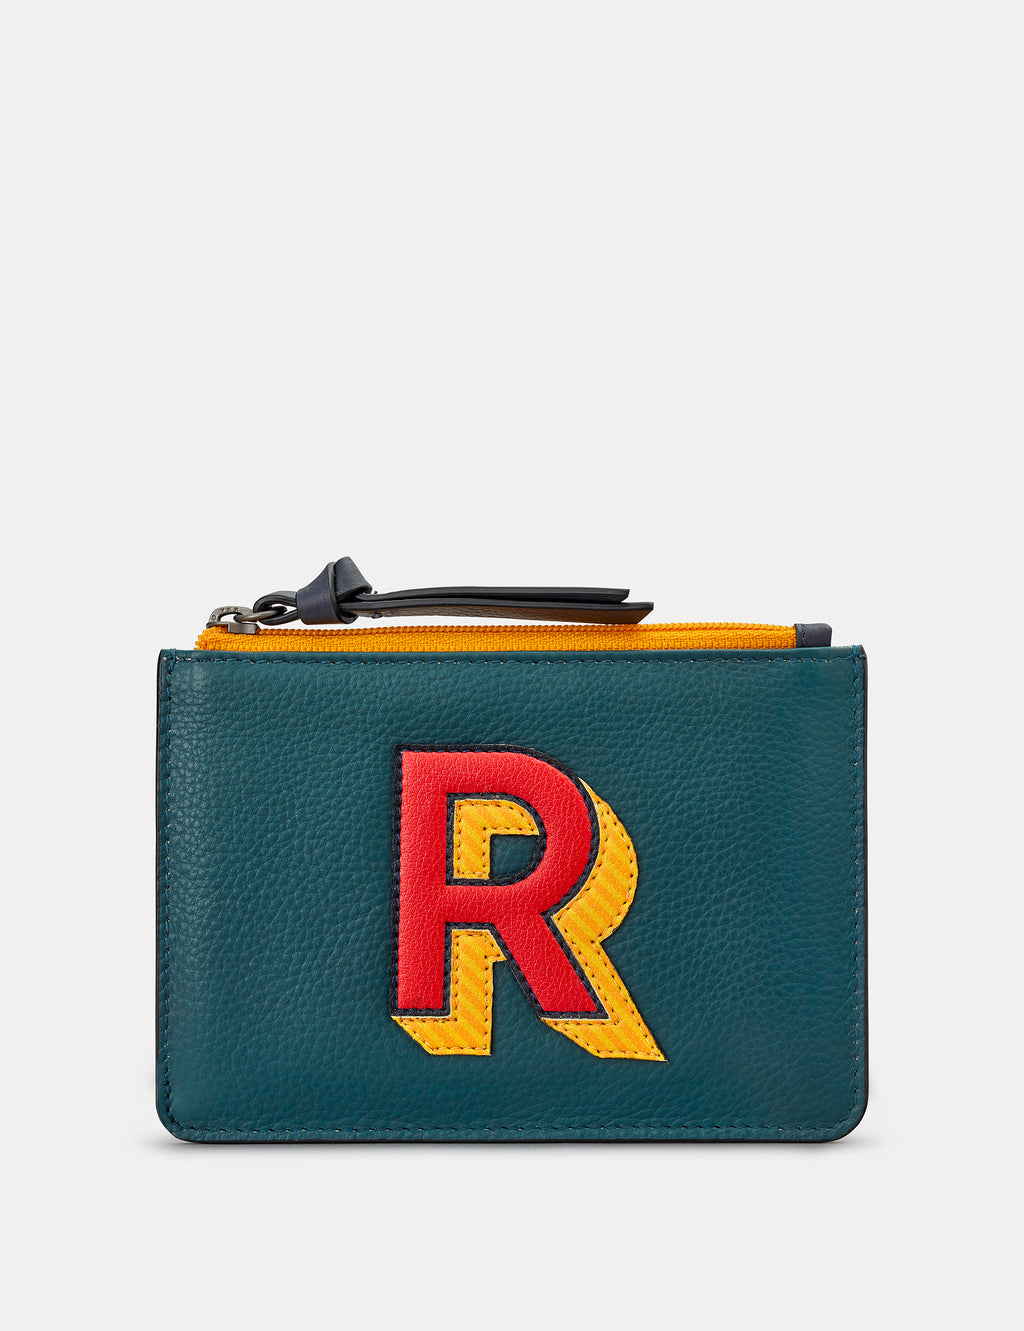 R Initials Teal Leather Zip Top Purse